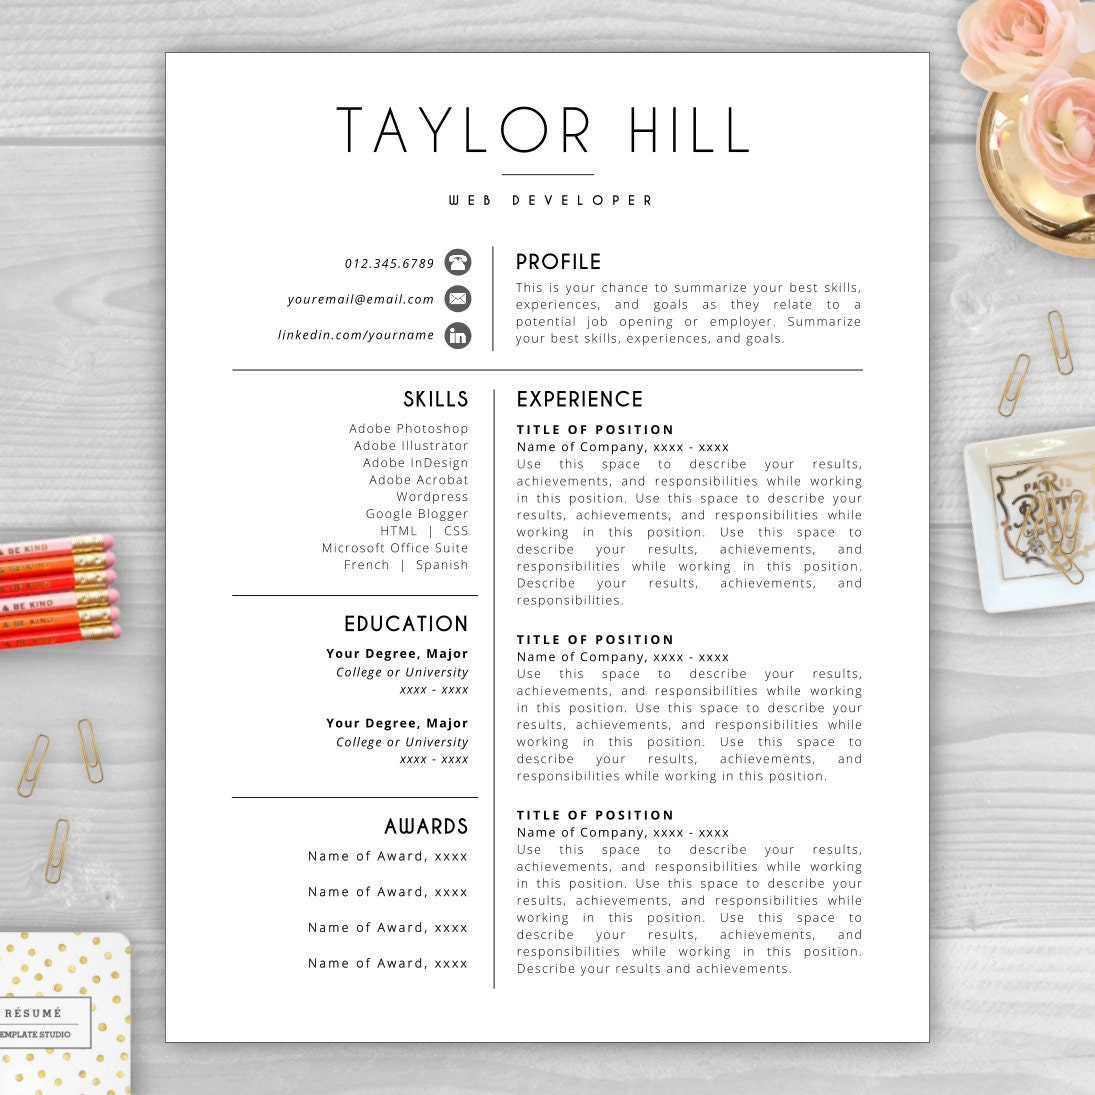 cover letter academic student workings spaces cover letter sample